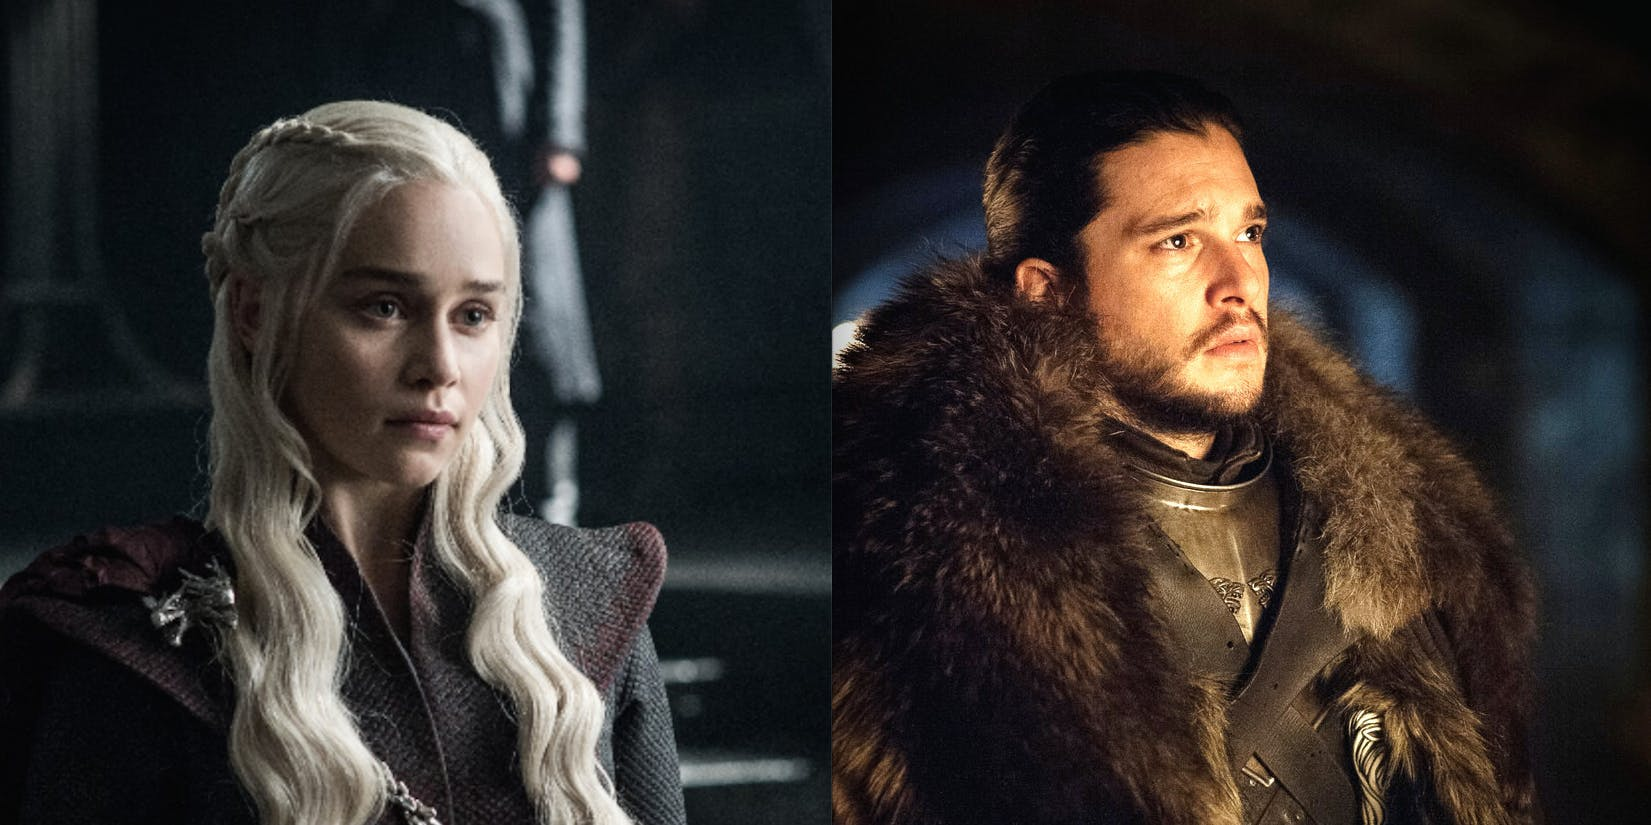 4 'Game of Thrones' Theories About Jon Snow's Parents